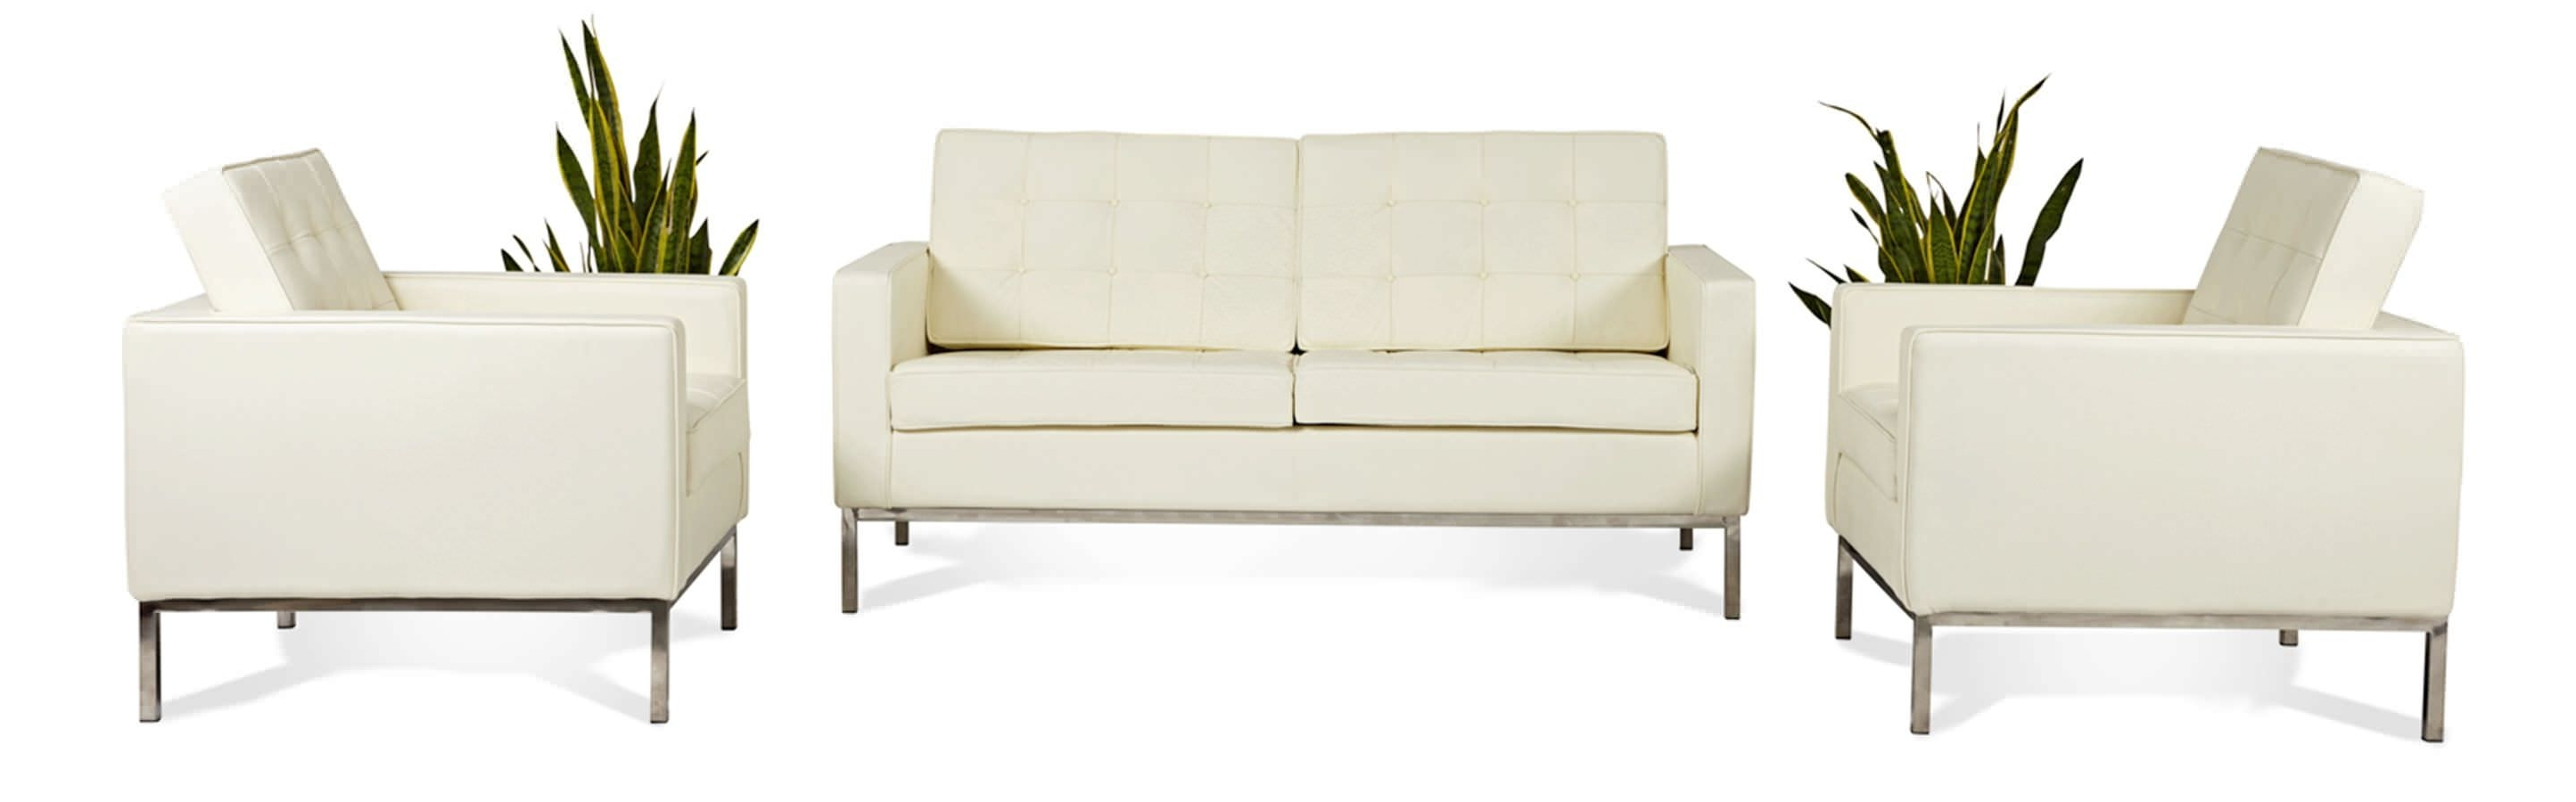 Most Recent Florence Sofas And Loveseats Throughout Florence Knoll Style Loveseat 2 Seater Small Sofa Mid Century Modern (View 9 of 20)